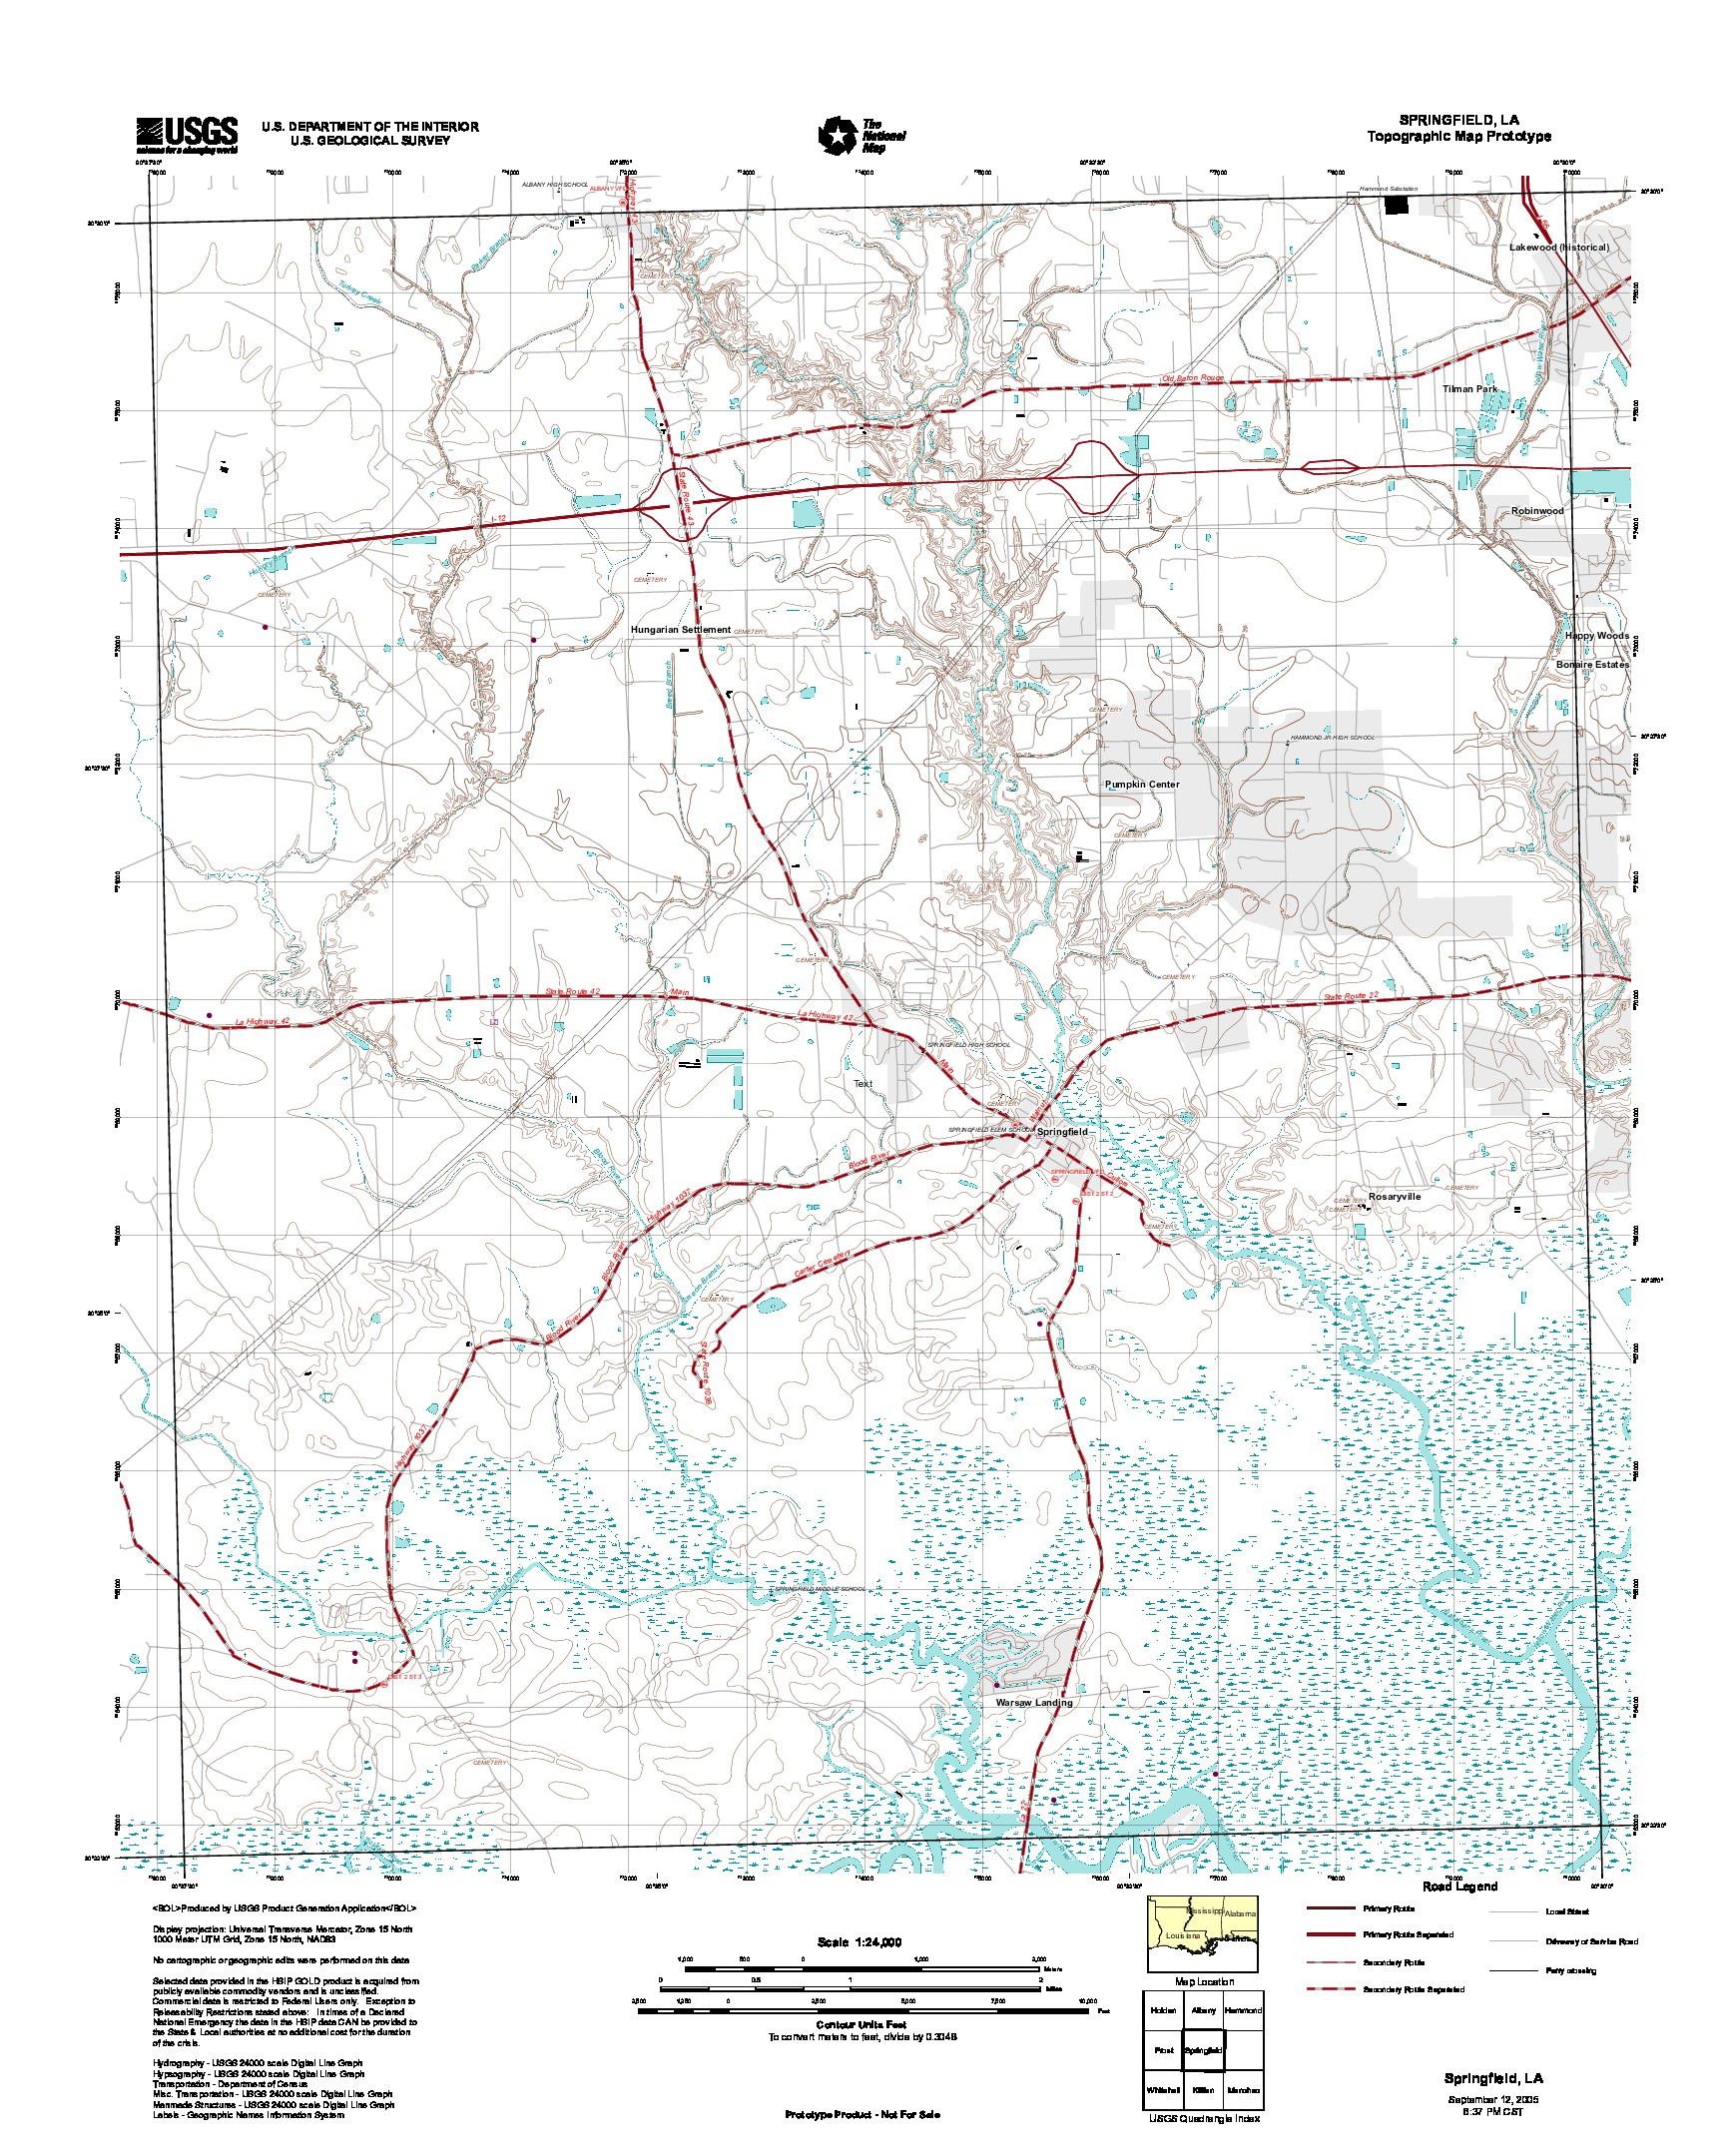 Springfield, Topographic Map Prototype, Louisiana, United States, September 12, 2005